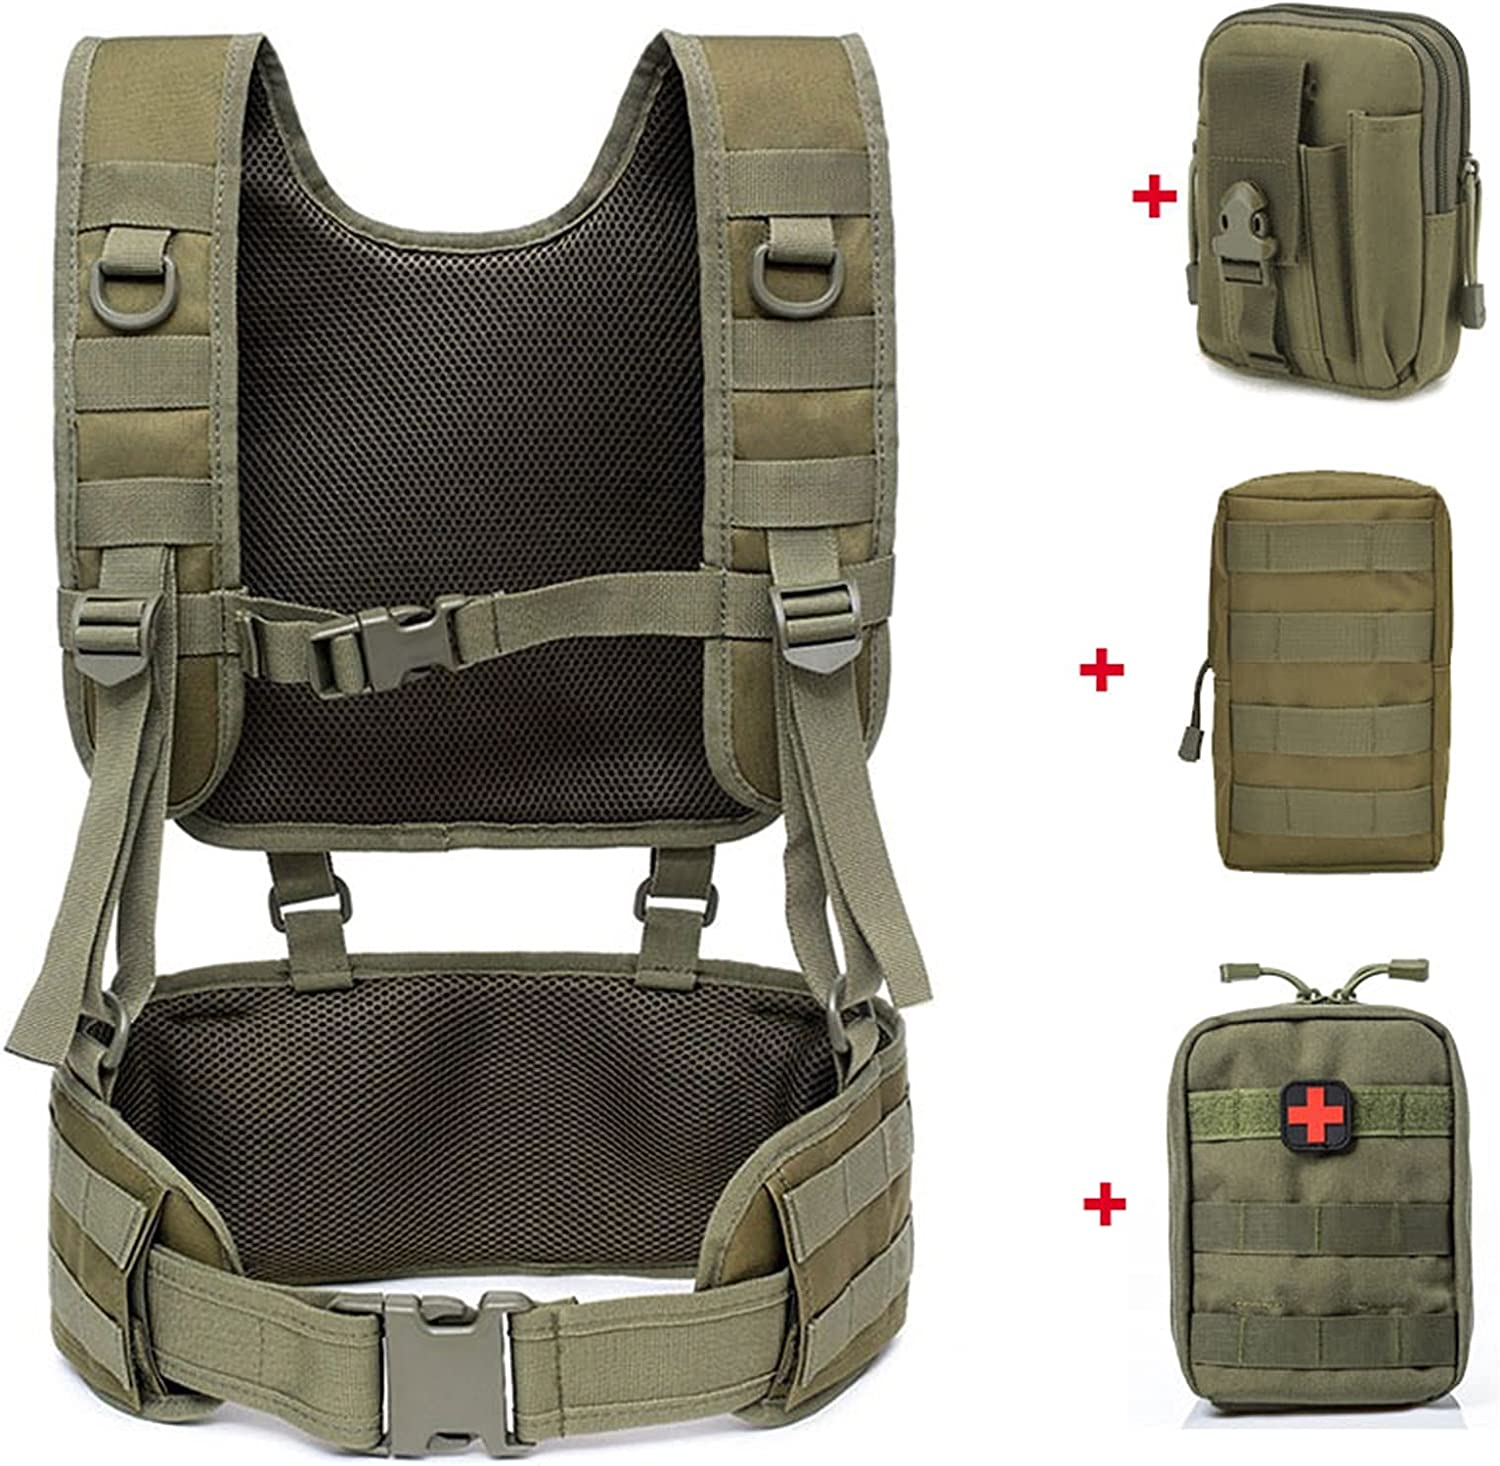 Our shop OFFers the best service LQMM Tactical Military Belt Outdoor Army Product Sling Combat Be Airsoft